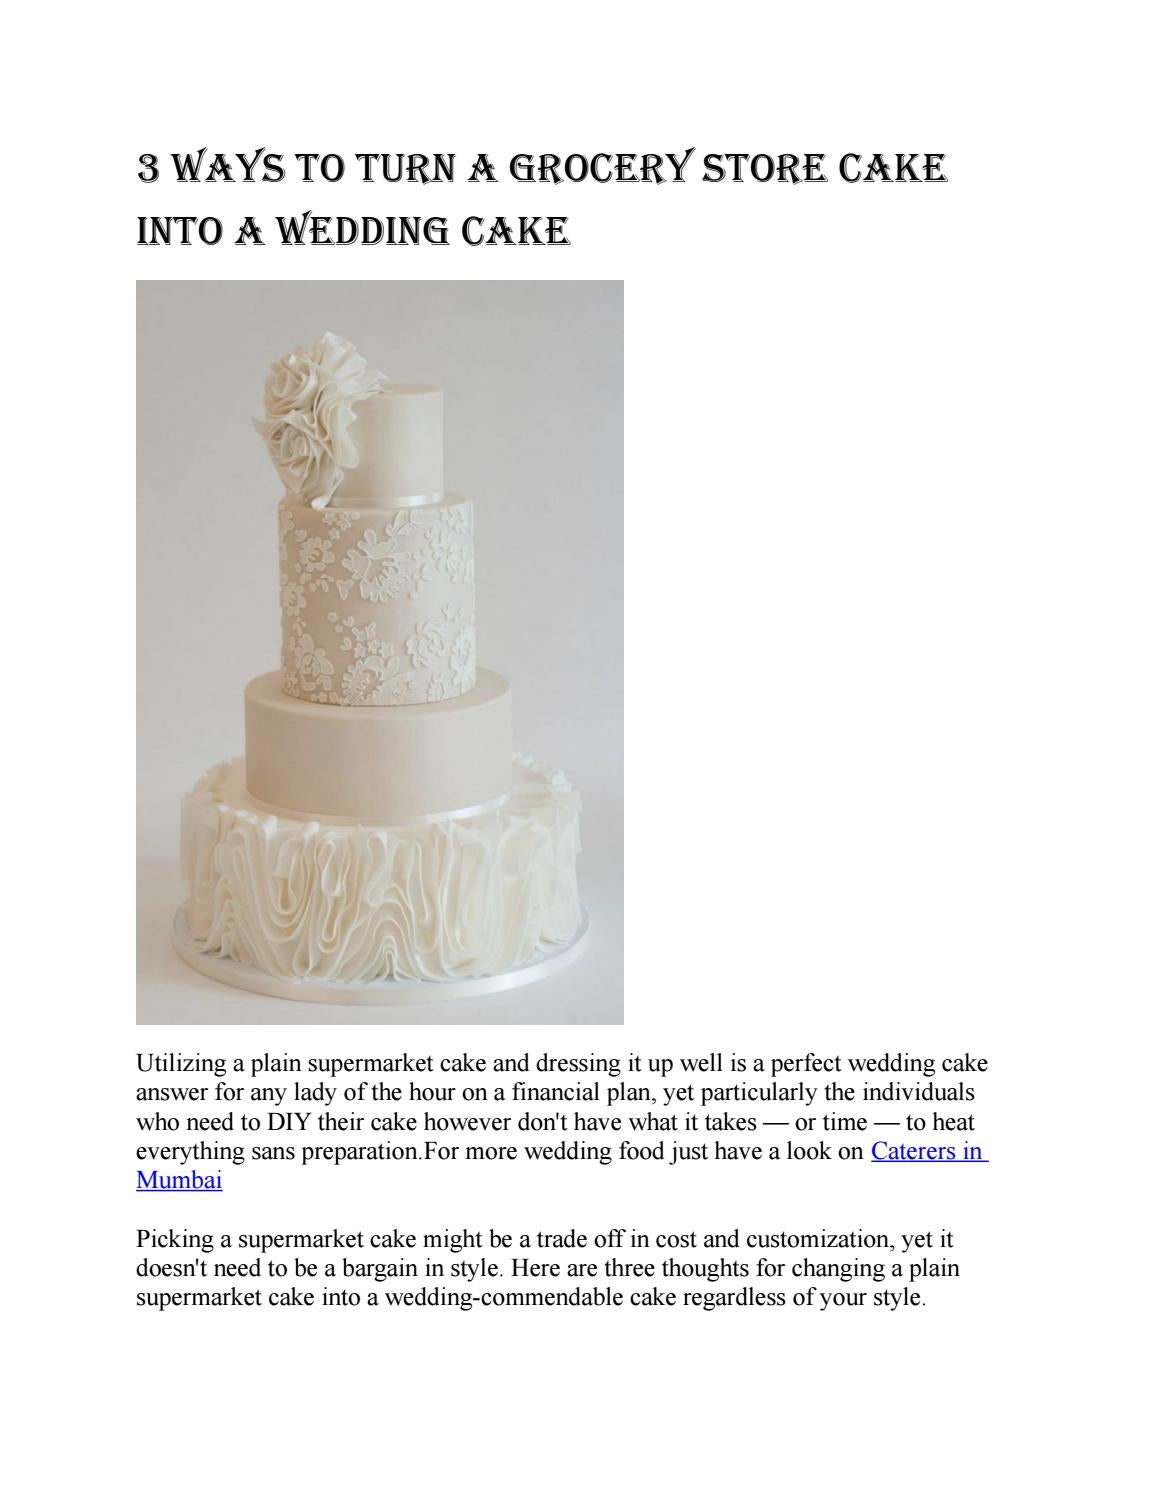 3 ways to turn a grocery store cake into a wedding cake by shaadi ...